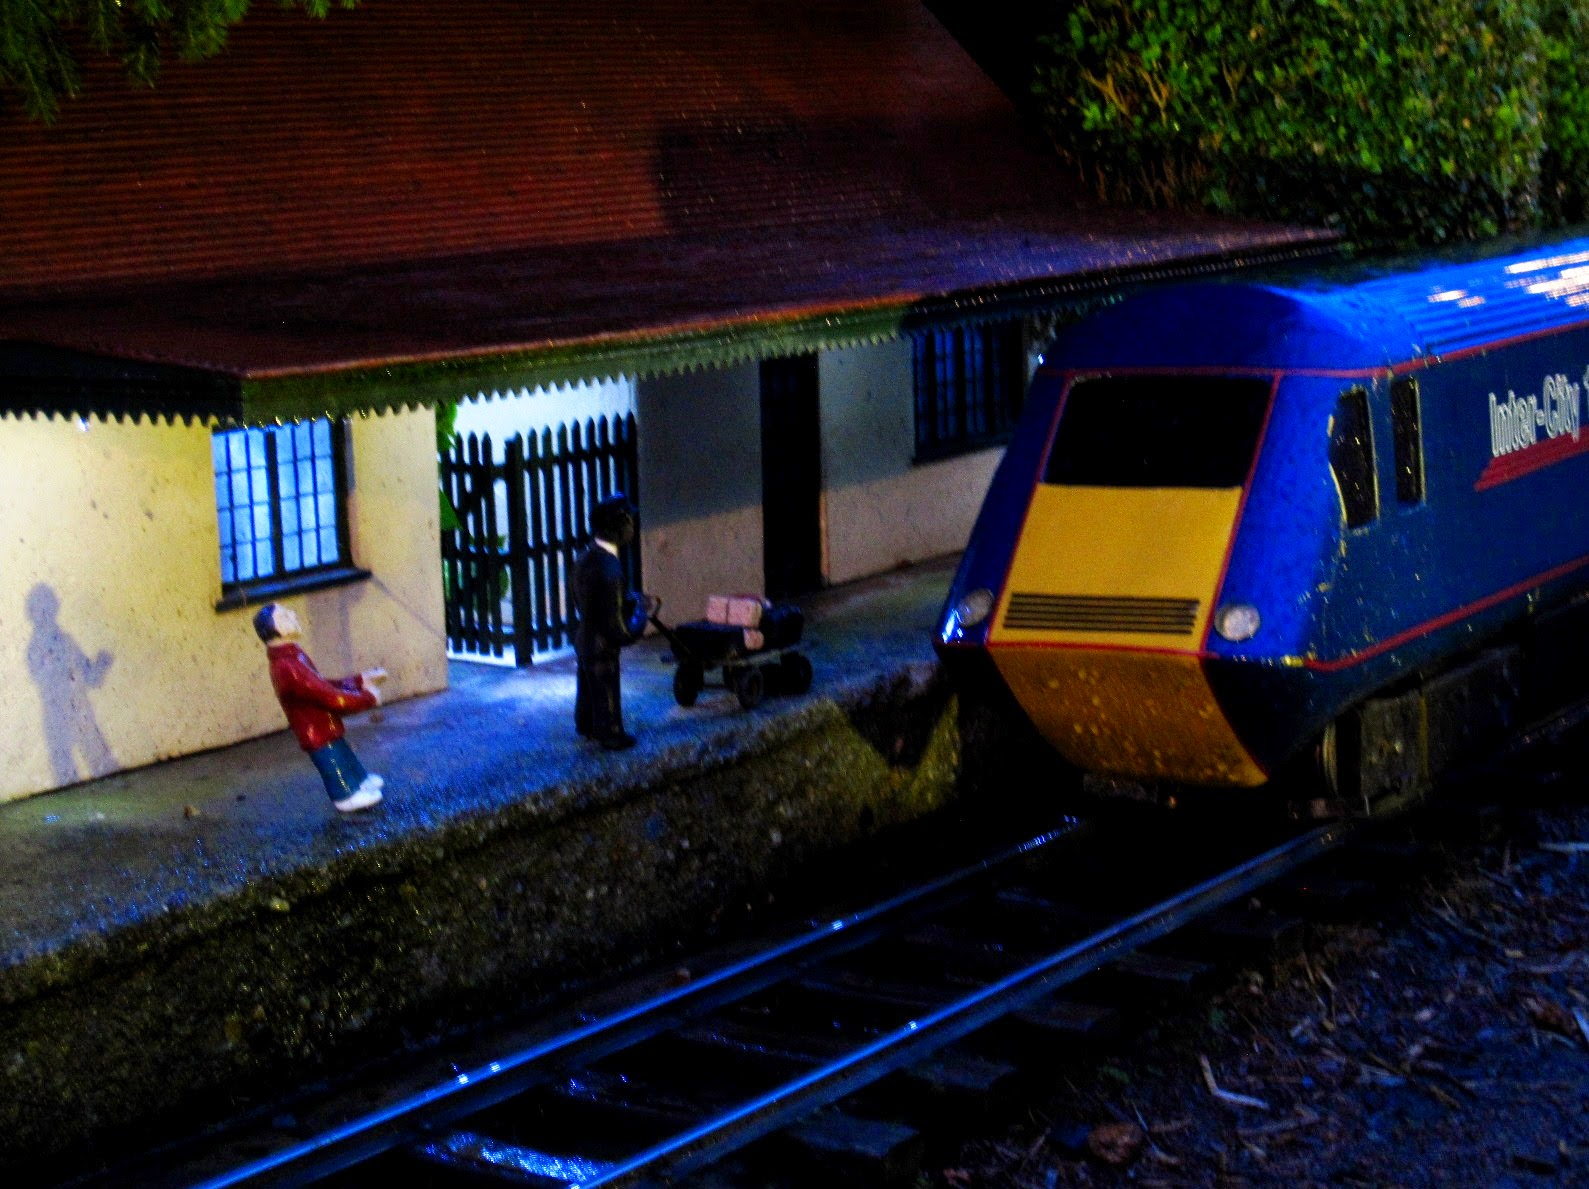 Miniature model of a railways station with a train at the station, at night.